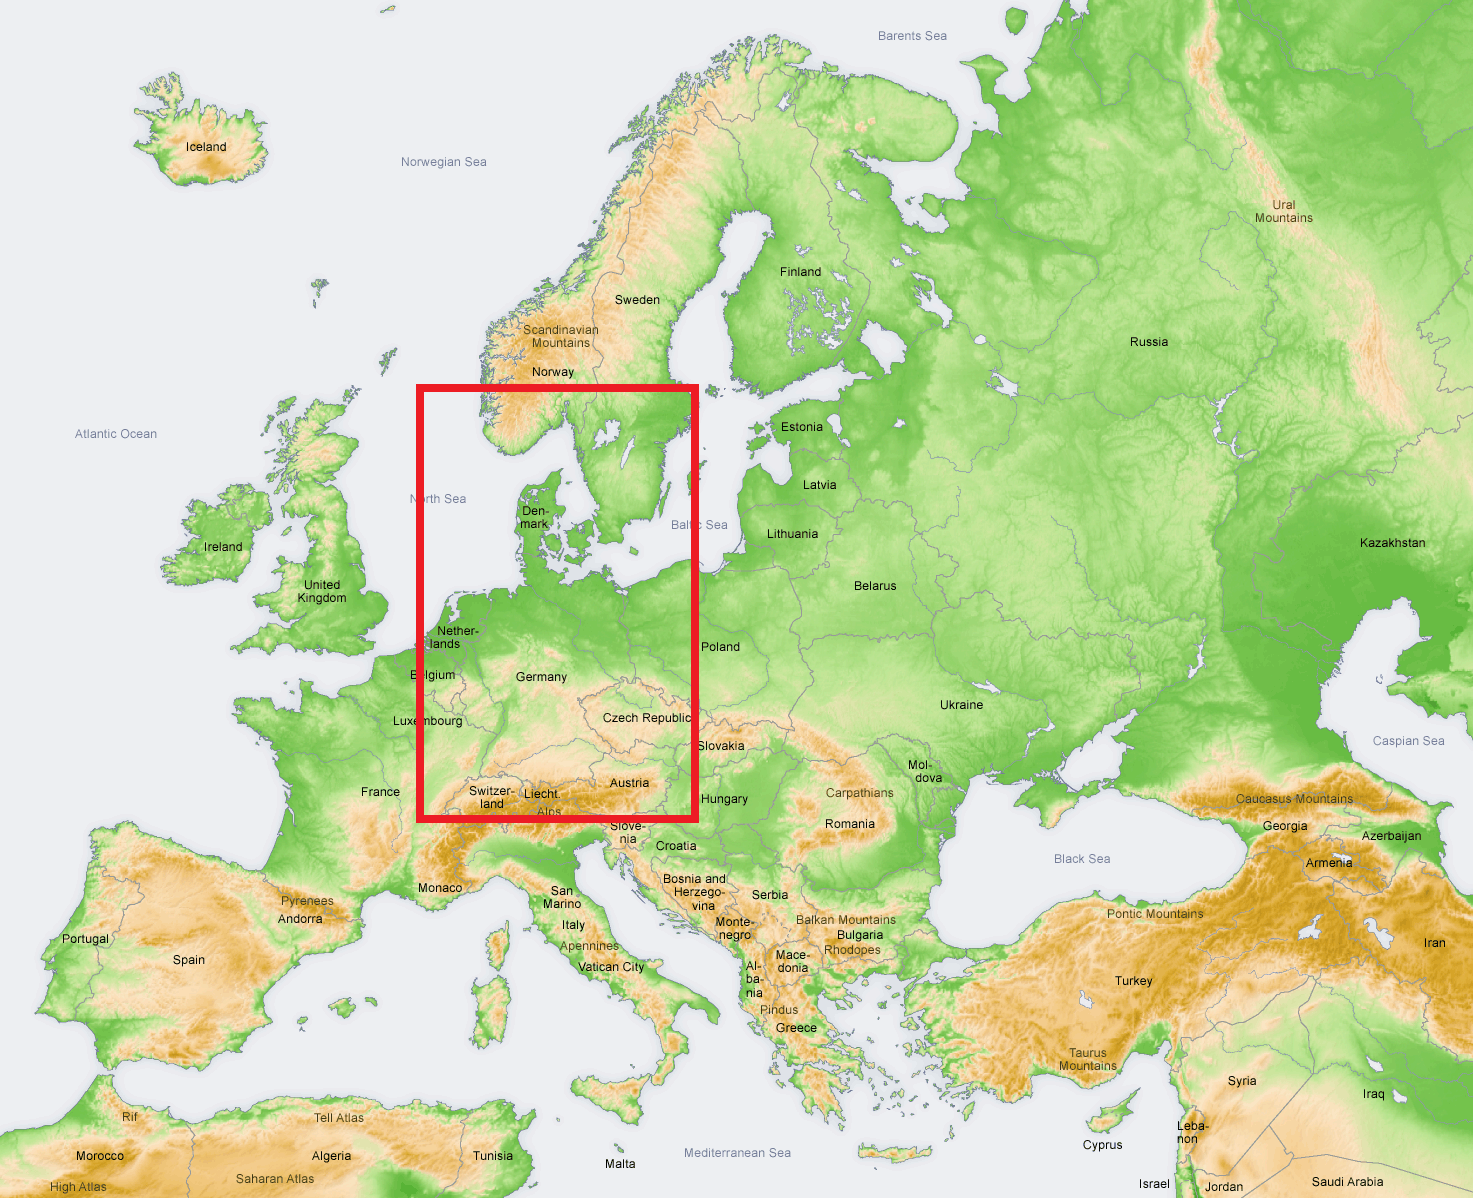 https://commons.wikimedia.org/wiki/File:Europe_topography_map_en.png